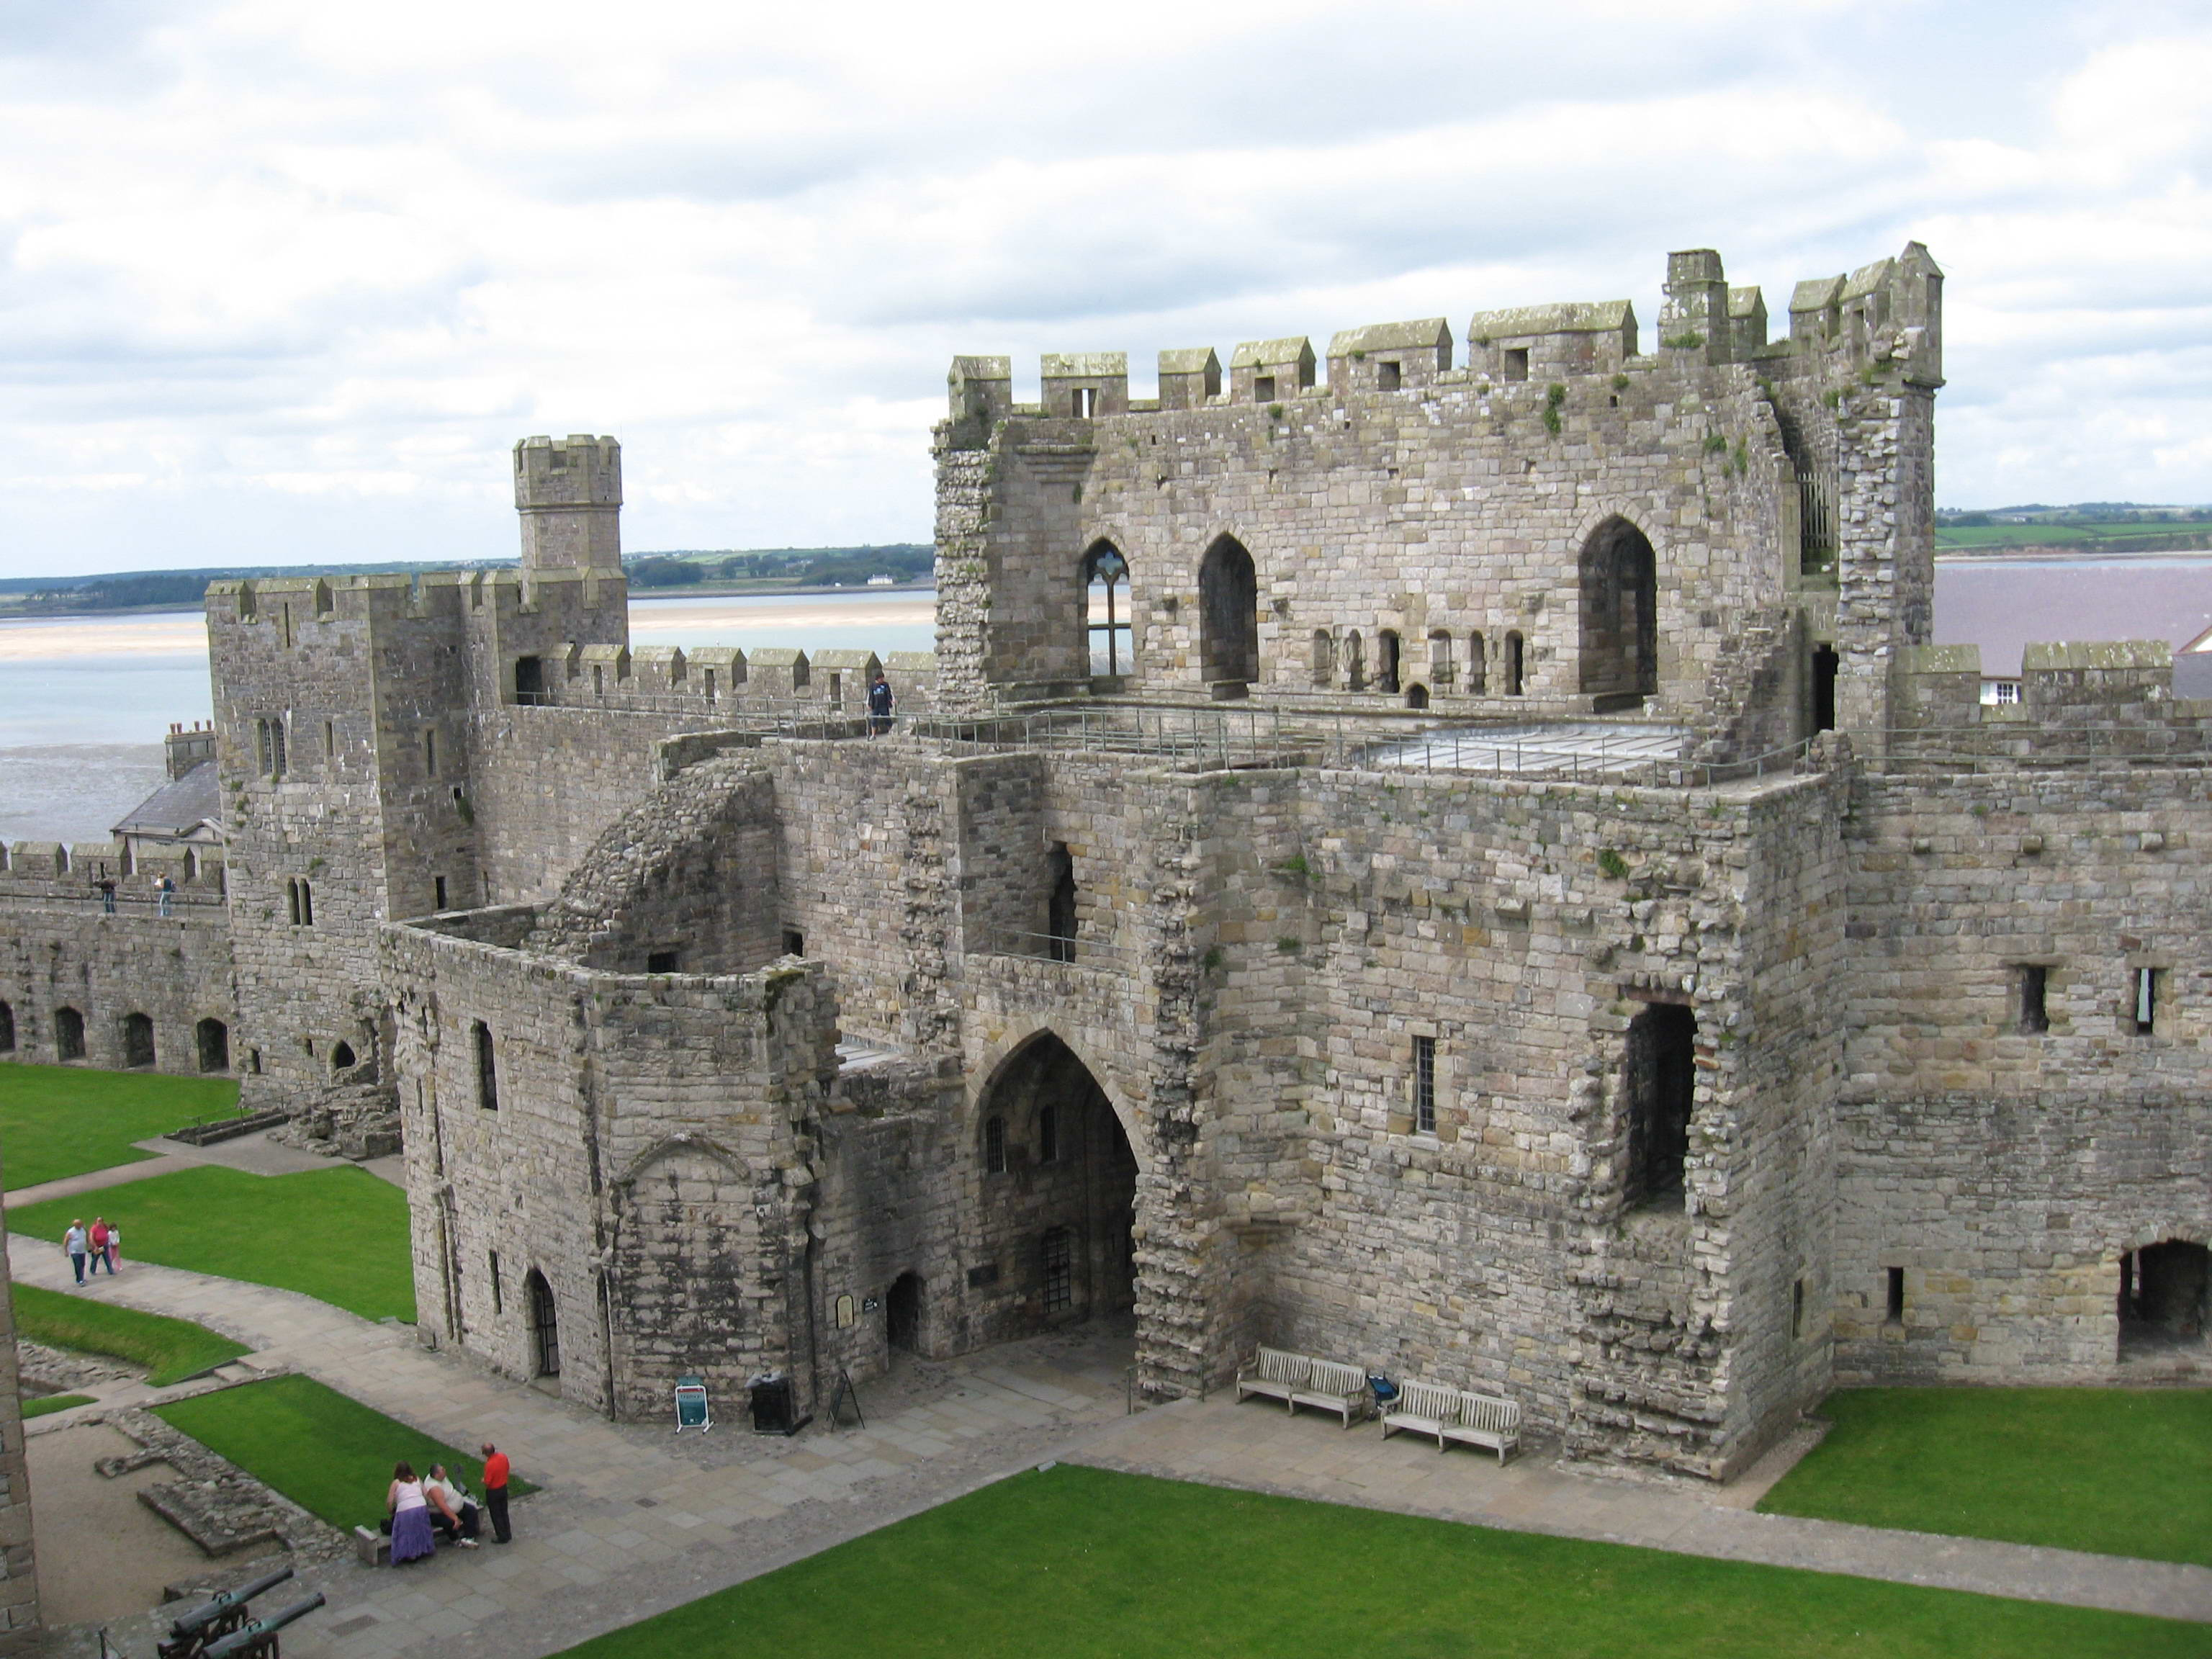 Mansion For Sale Cheap Wales Caernarfon Castle Travel